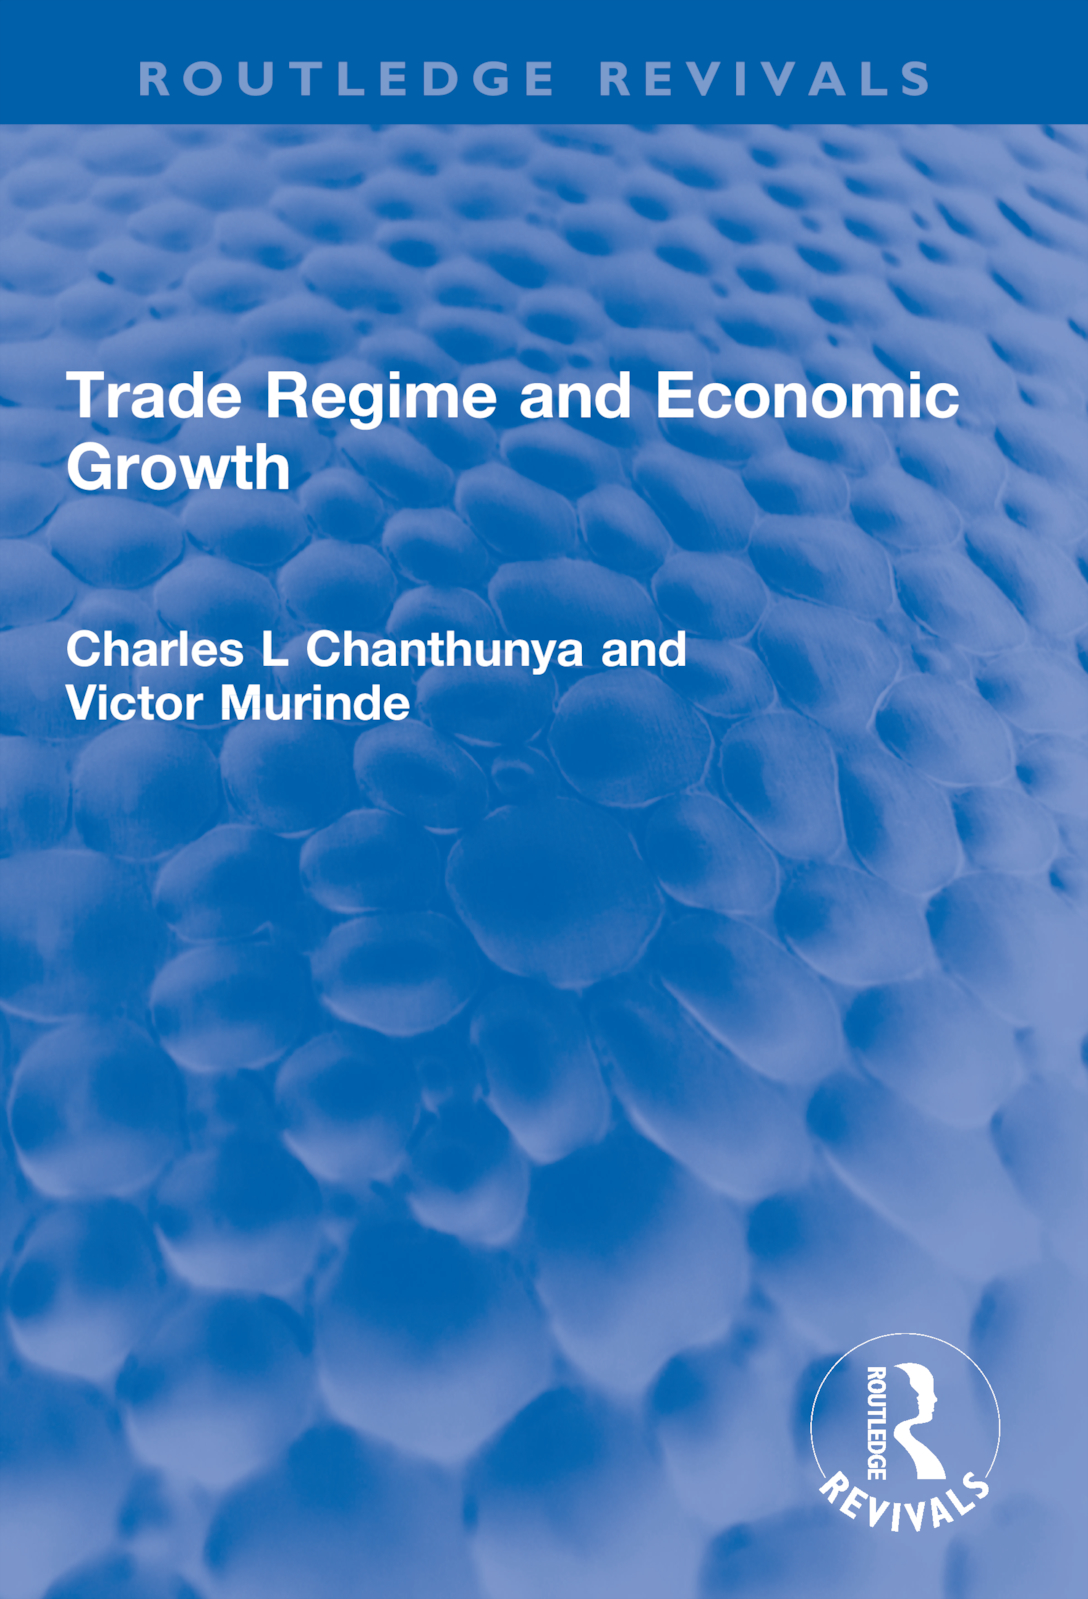 Trade Regime and Economic Growth